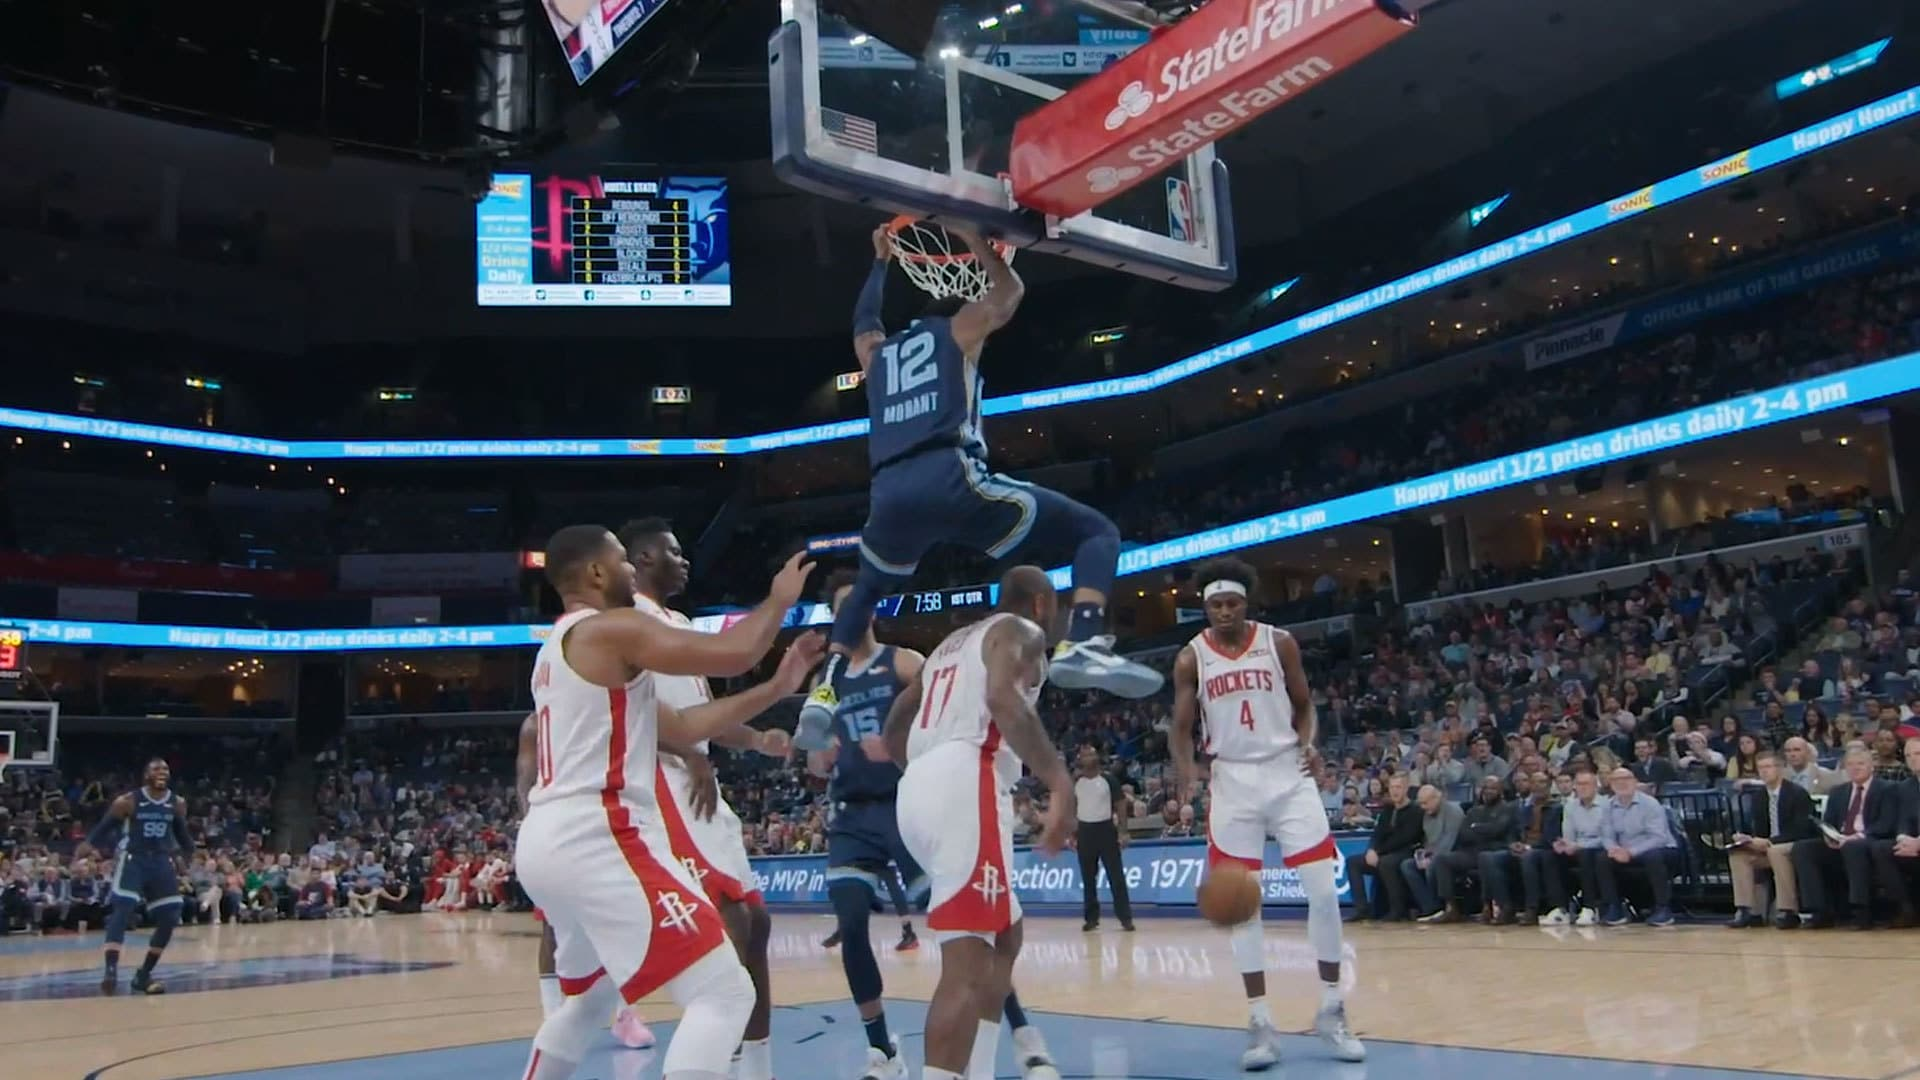 Revisiting Top Dunks of the Season | Grind City Media